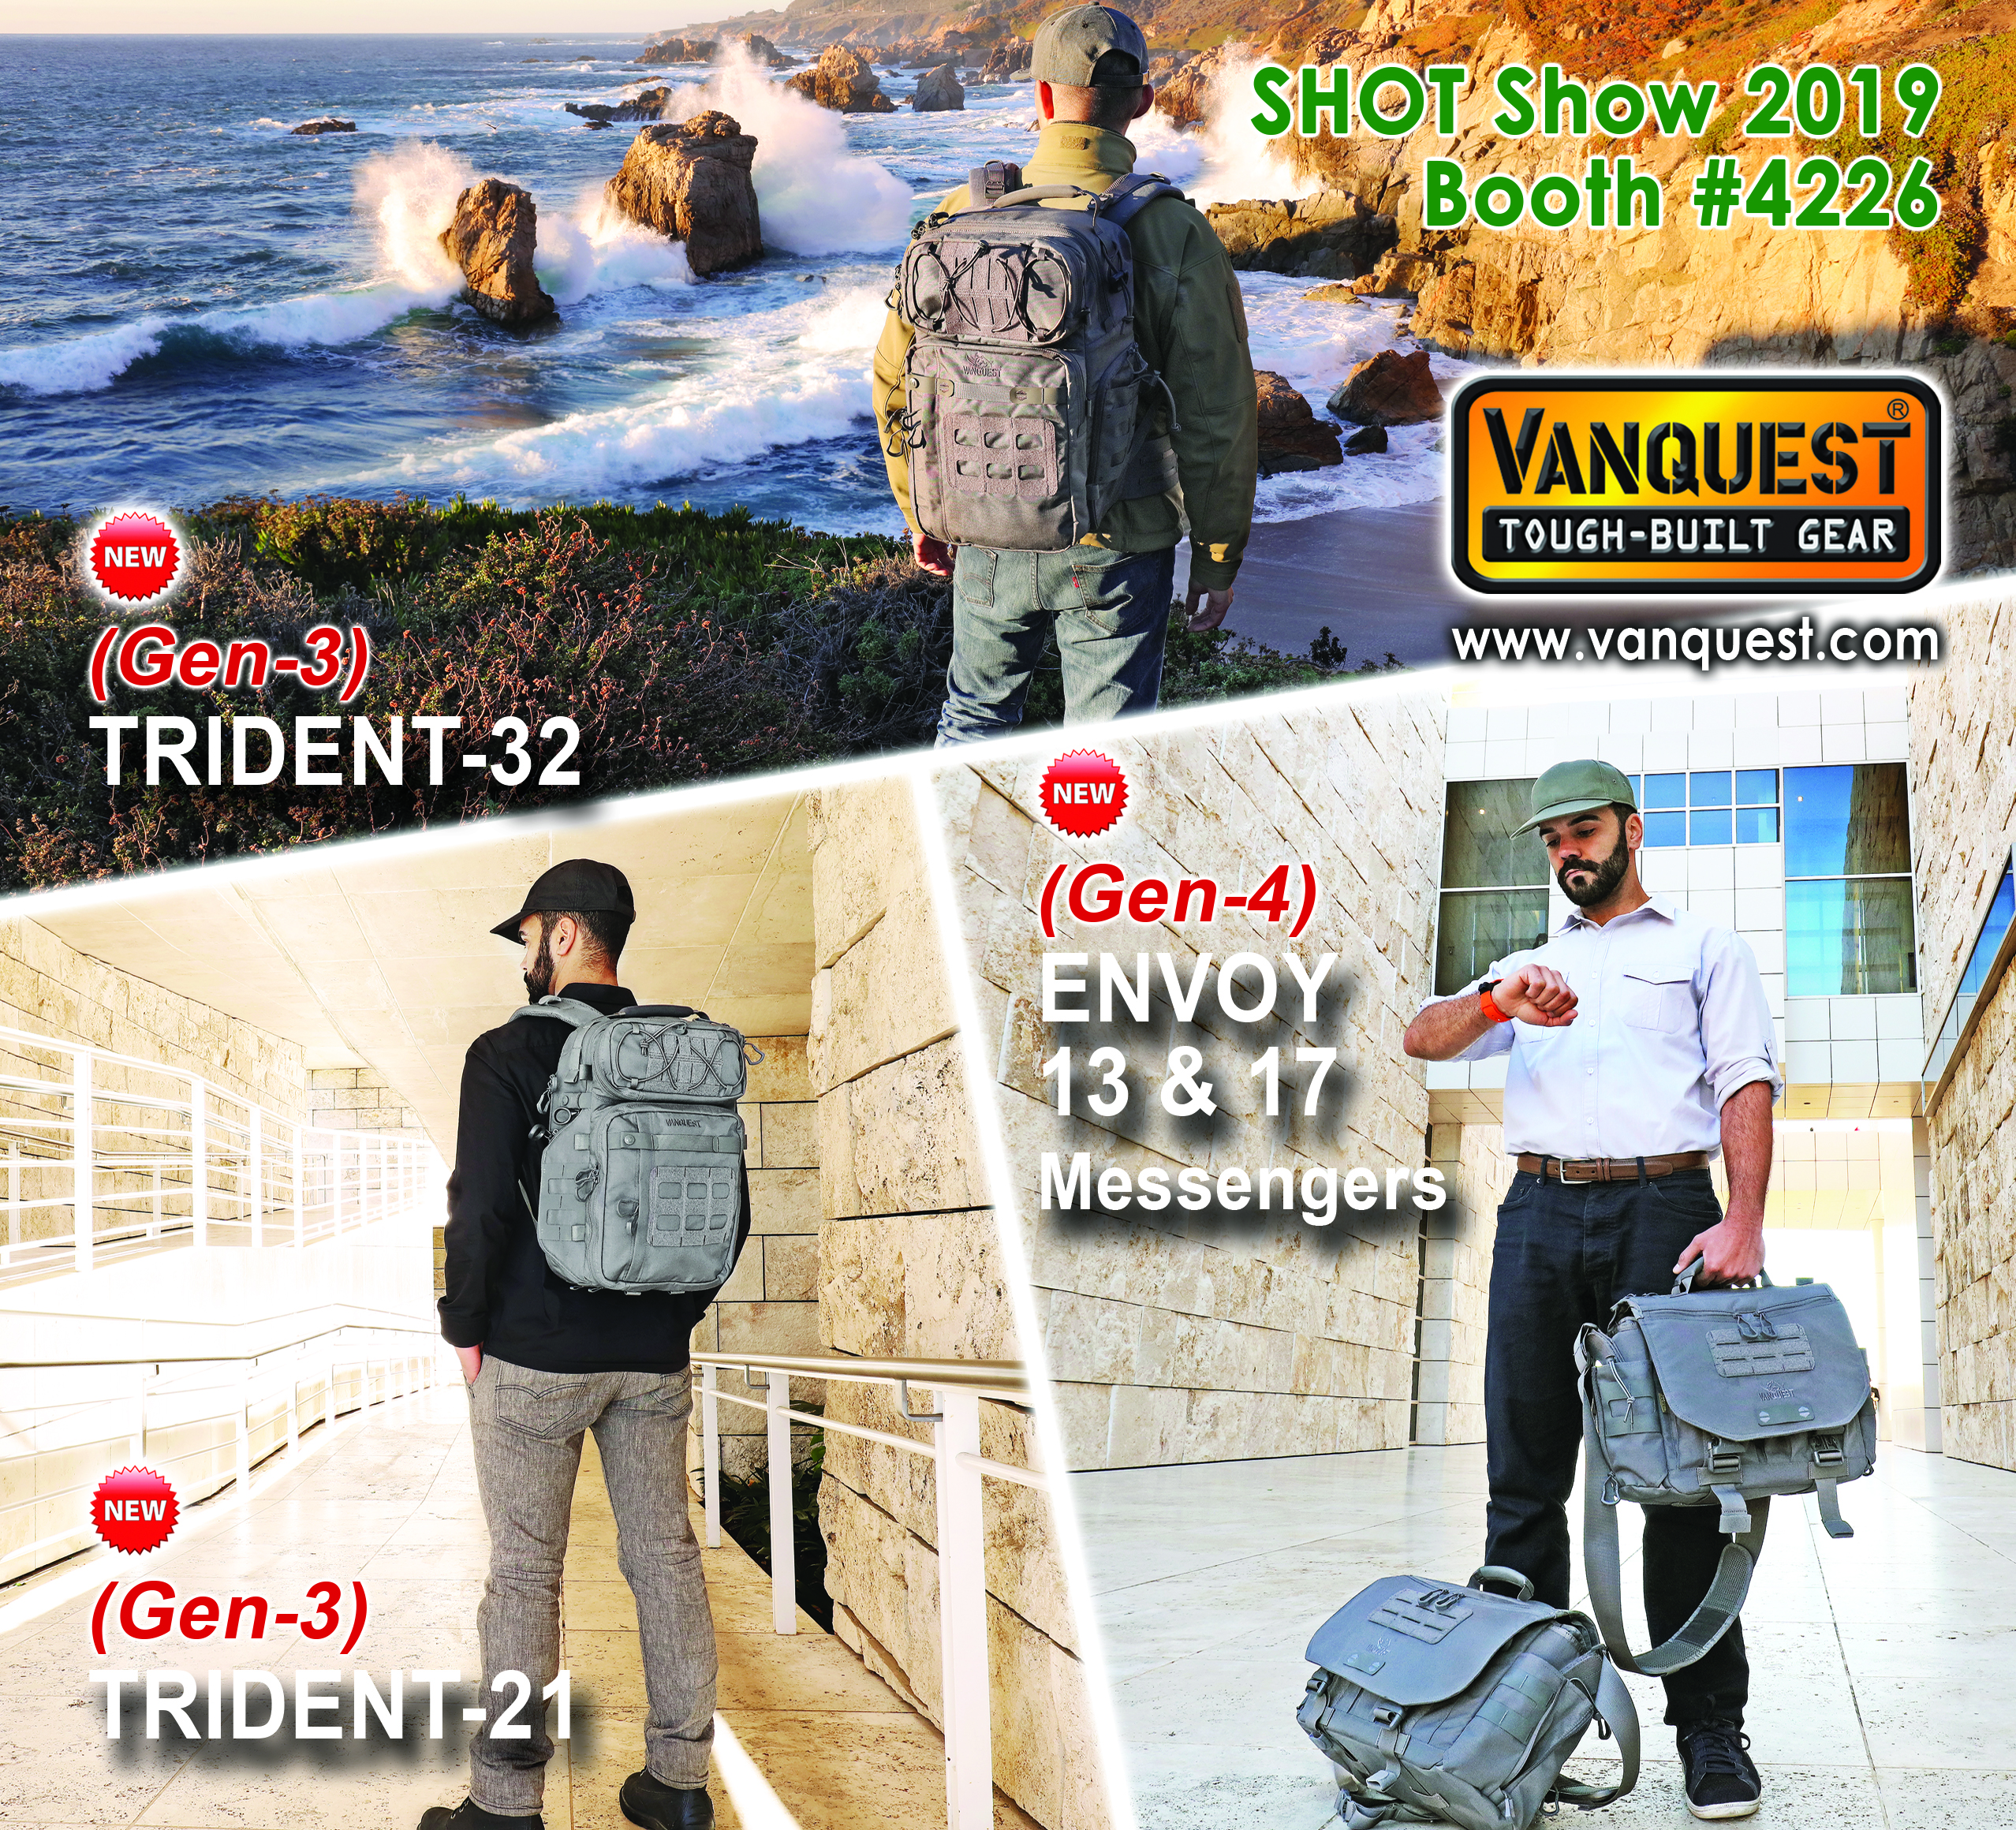 2019-flyer-shotshow-cover-cropped.jpg